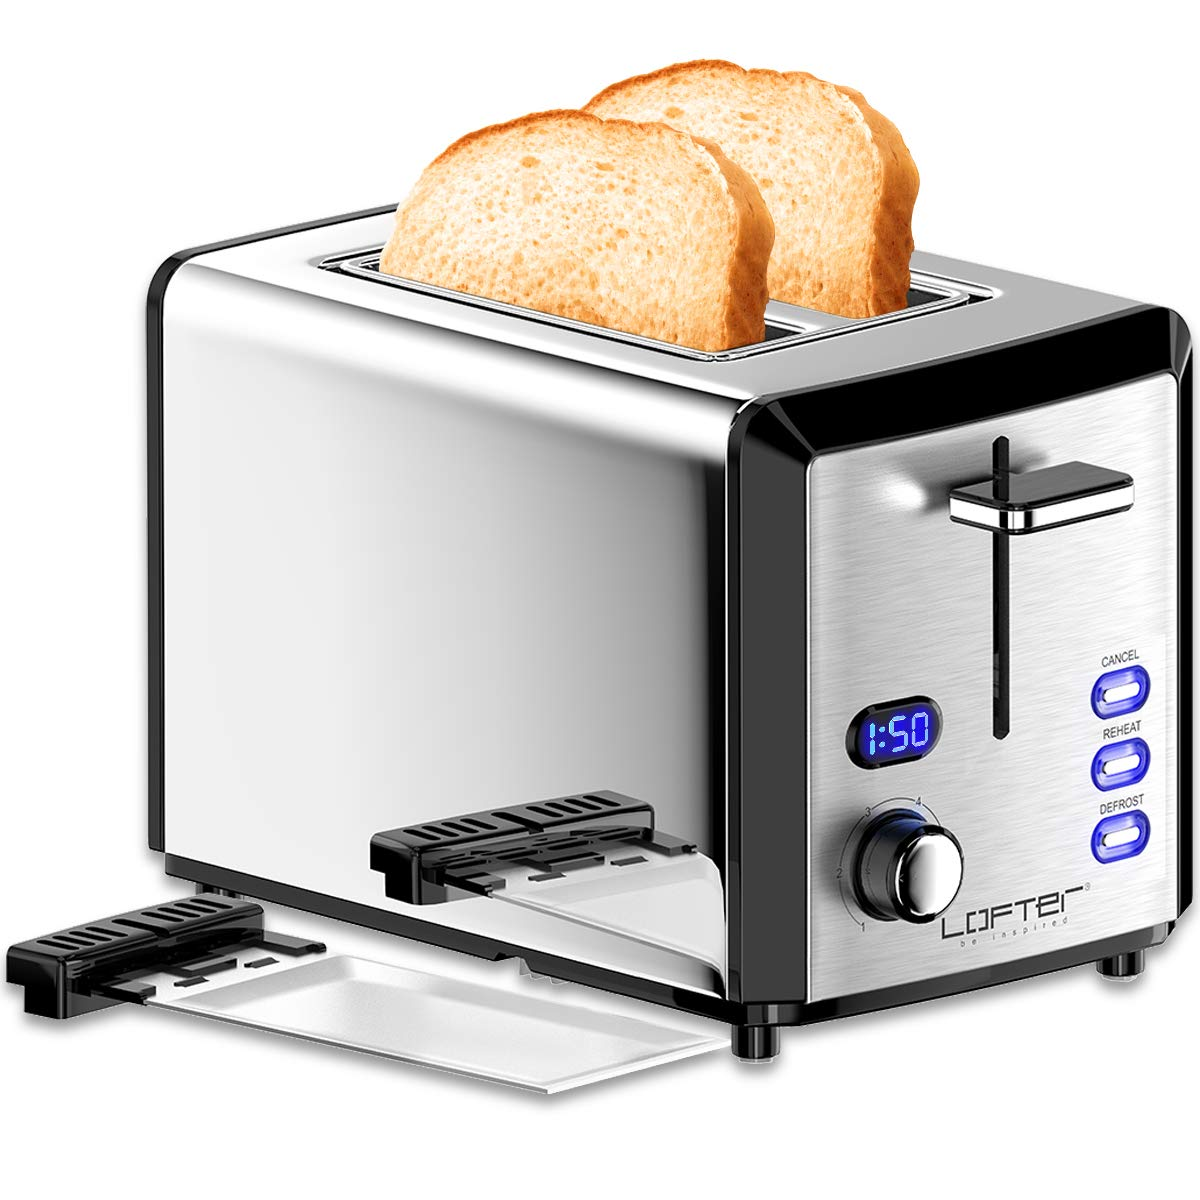 2 Slice Toaster, LOFTER Mirror Stainless Steel Toaster Extra Wide Slots Toasters with 6 Shade Settings, Compact LED Display with Removable Crumb Tray, Defrost/Reheat/Cancel, High Lift Lever, 800W by LOFTer